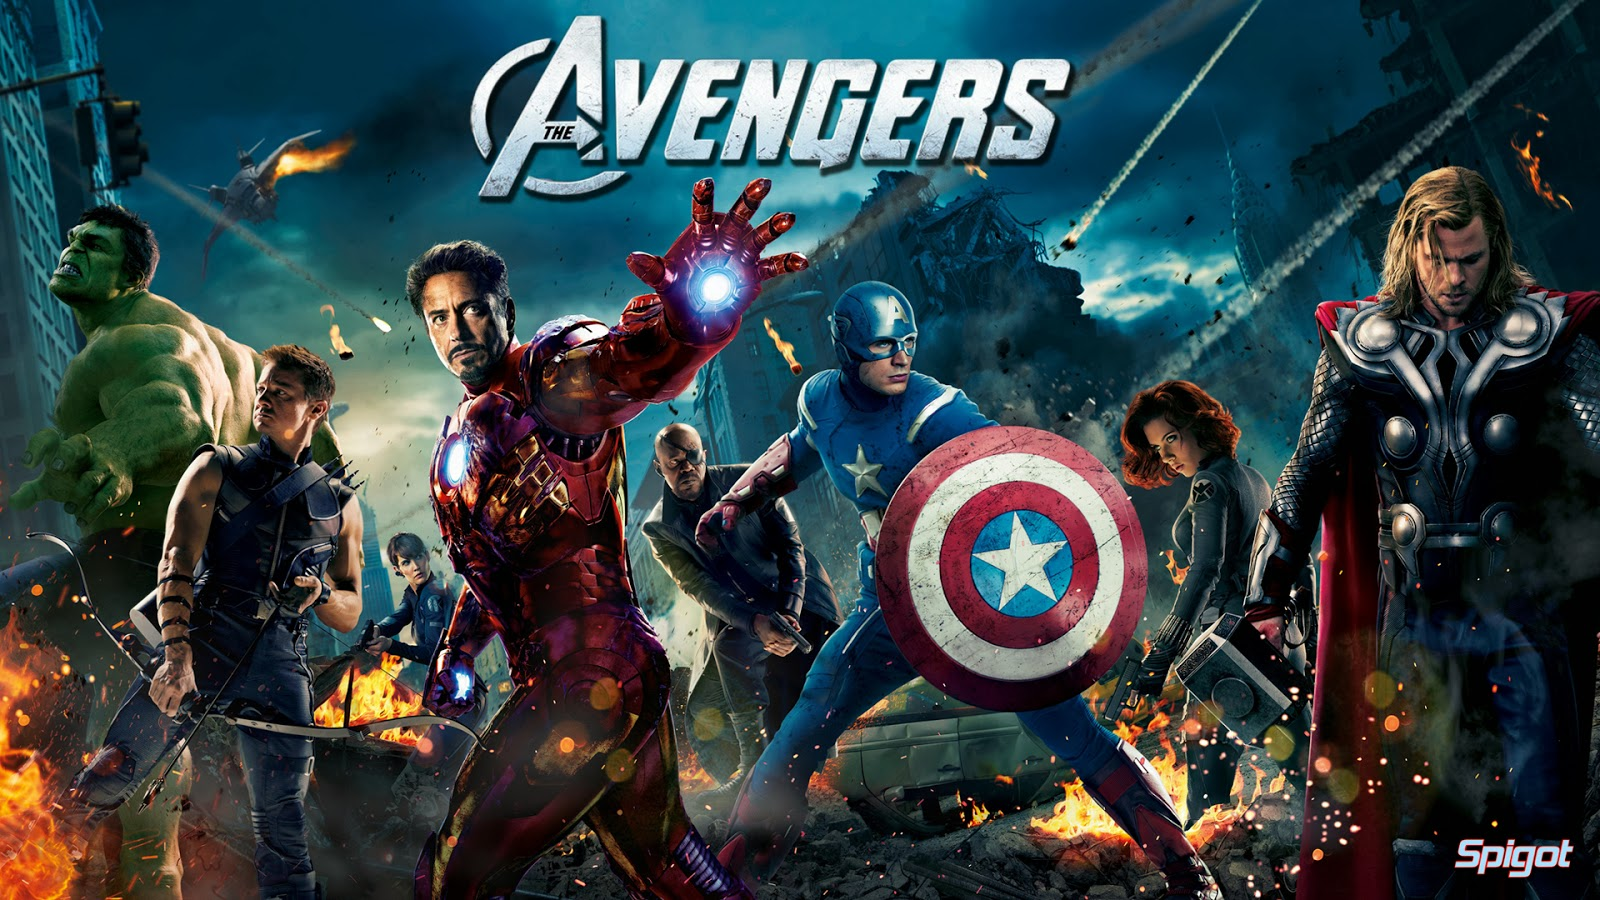 Marvel had doubts about the success of The Avengers in 2012